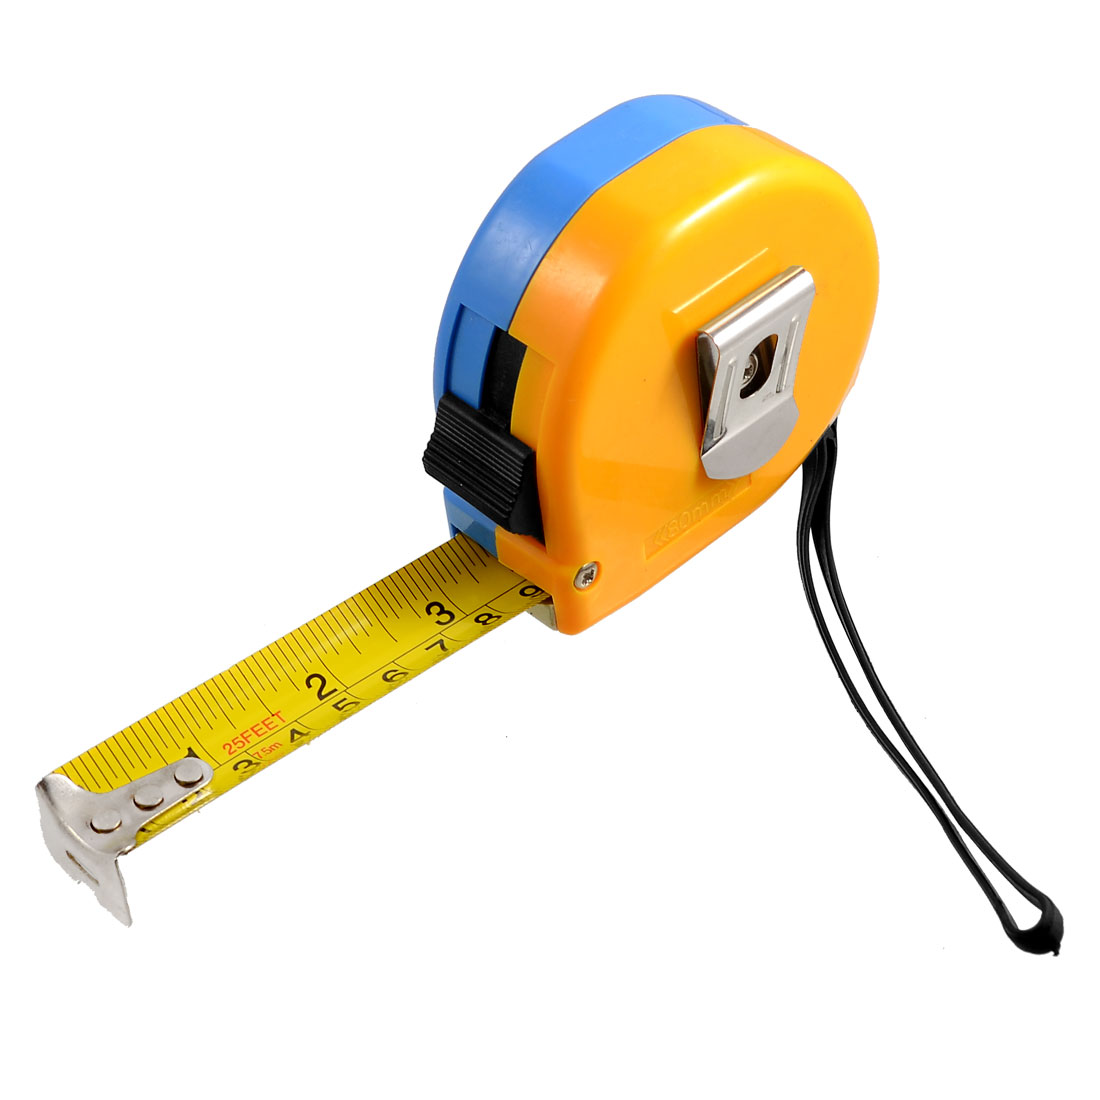 Yellow Blue Housing Retractable English Metric Ruler Tape Measure Tool 25Ft 7.5M